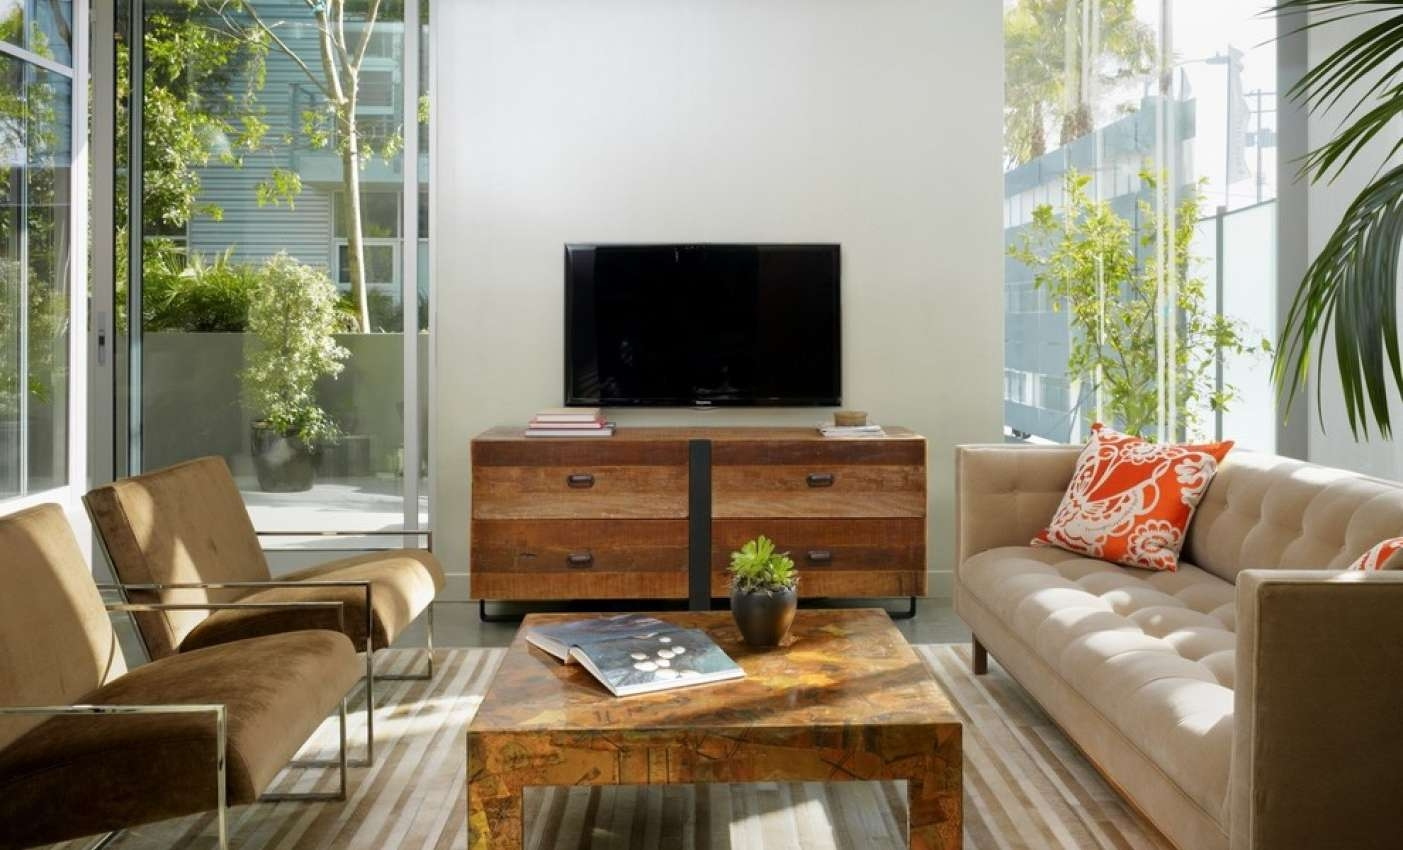 Table : 35 Best Cantilever Tv Stands Images On Pinterest | Coffee Inside Coffee Tables And Tv Stands (View 14 of 15)